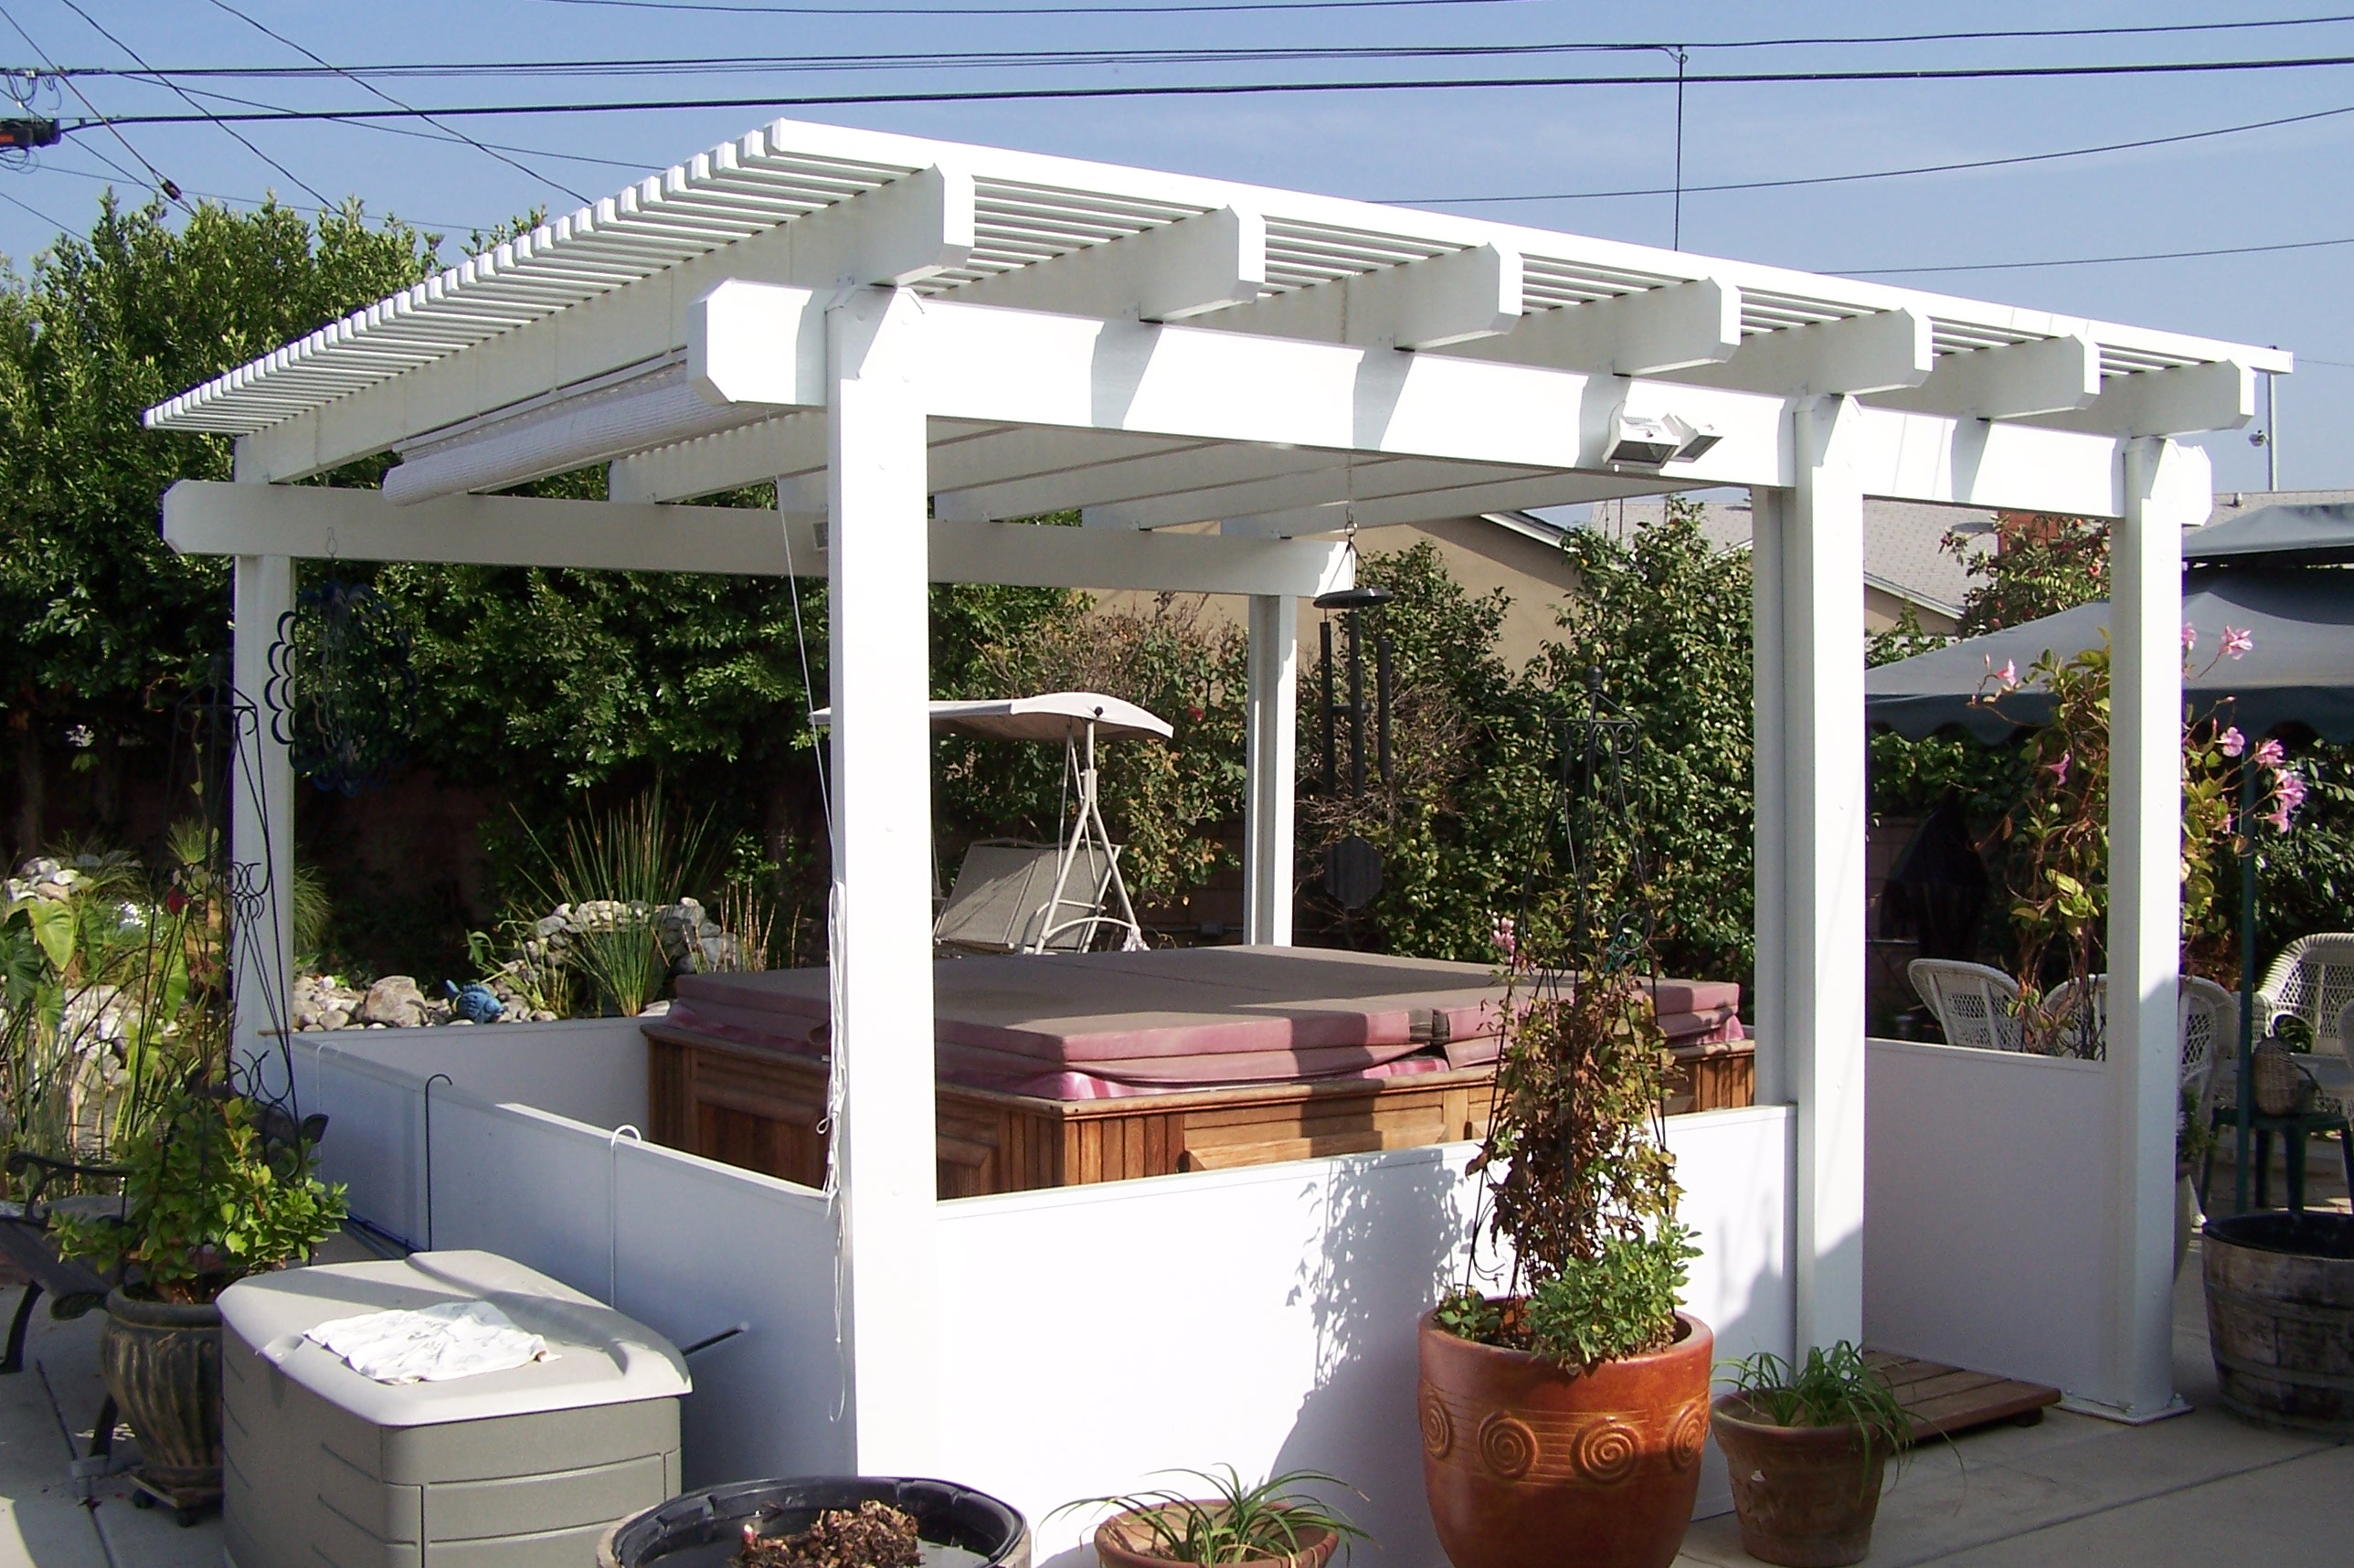 awning cover makeovers co freestanding patio i blueprints diy wooden covers wood nongzi ideas designs standing simple